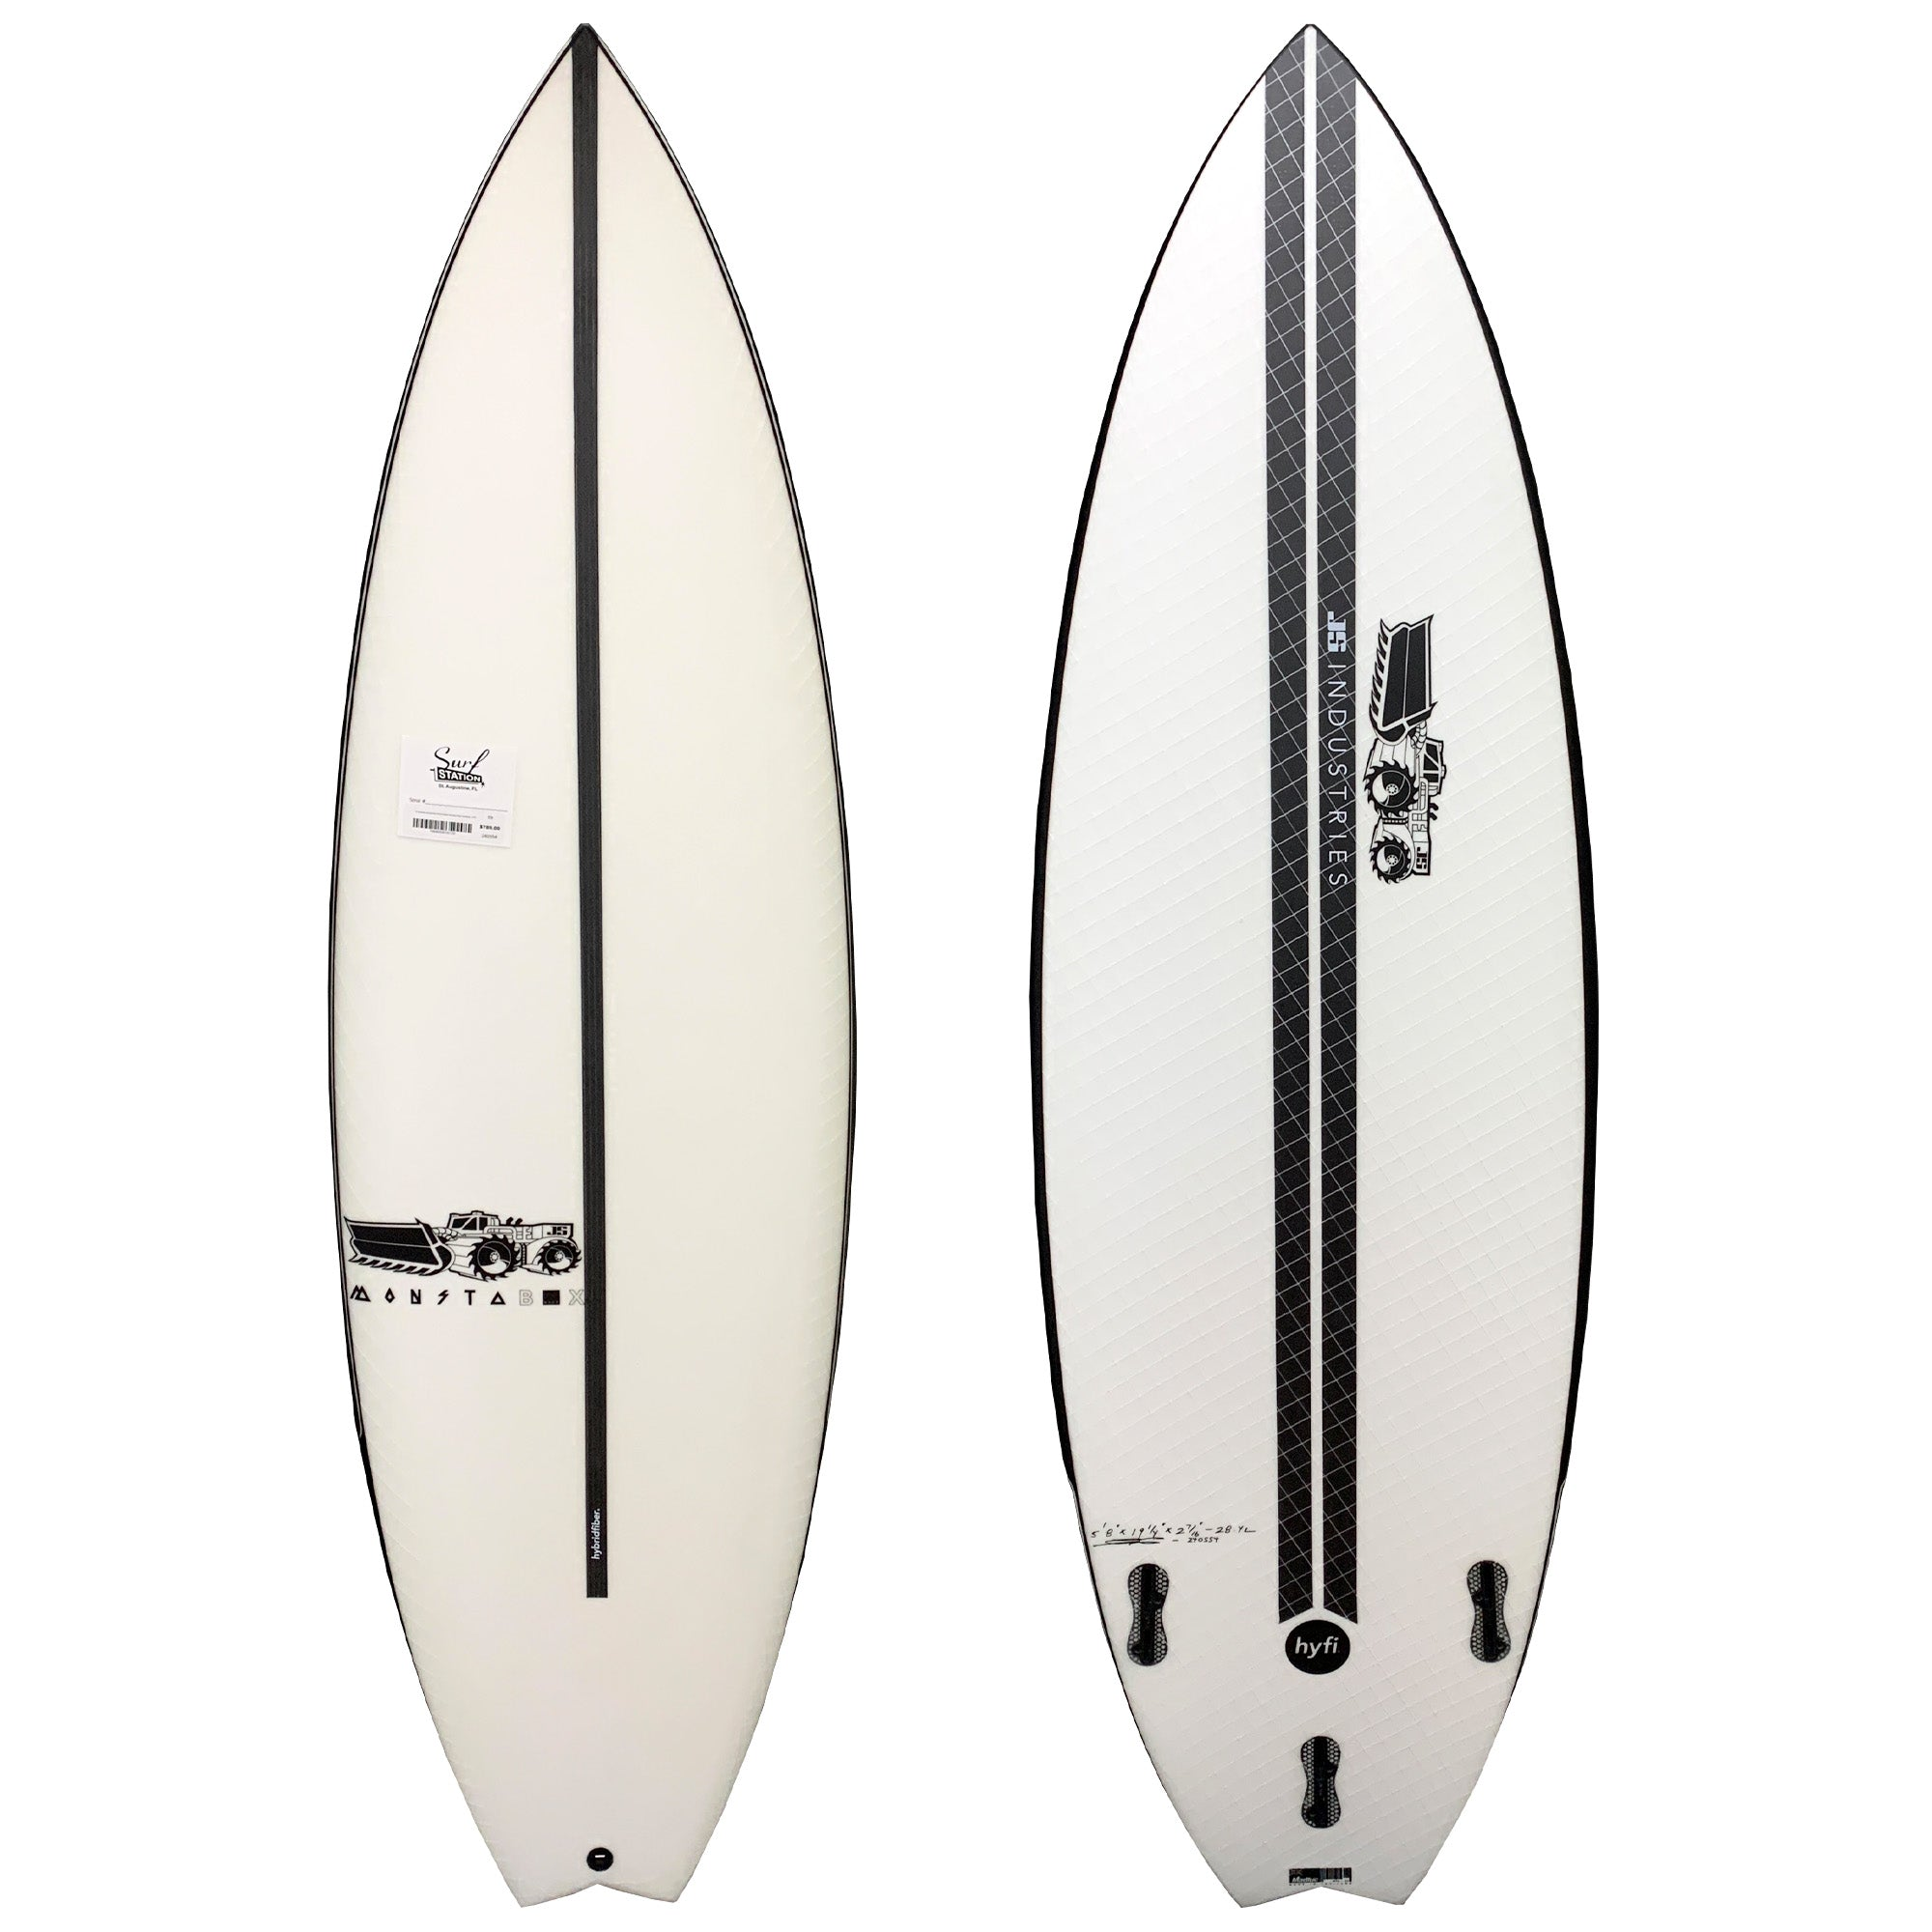 JS Monsta Box 2020 Swallow Tail HYFI Surfboard - FCS II